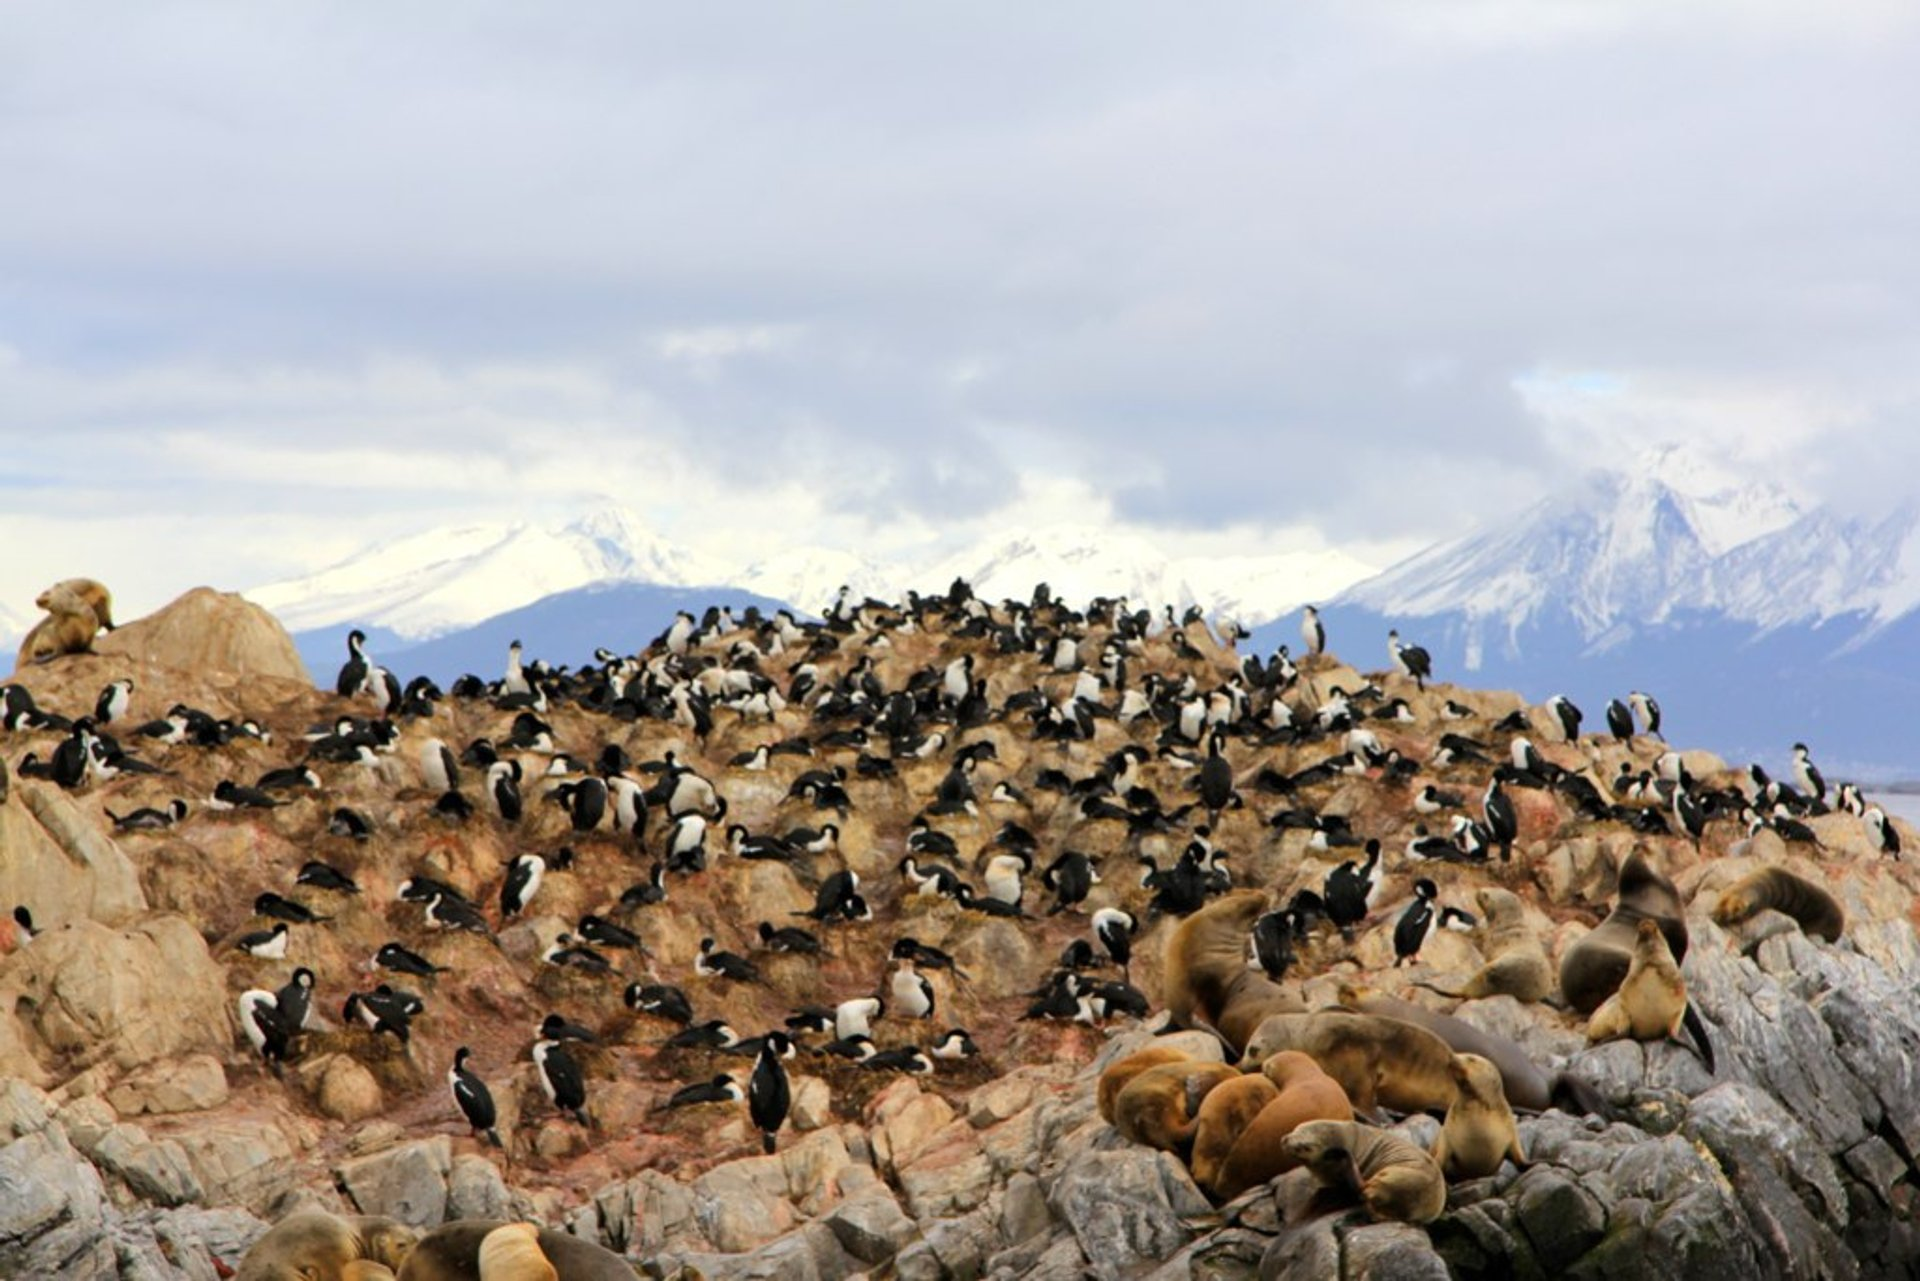 Sea lions and penguins, Ushuaia Department, Tierra del Fuego, Patagonia 2020